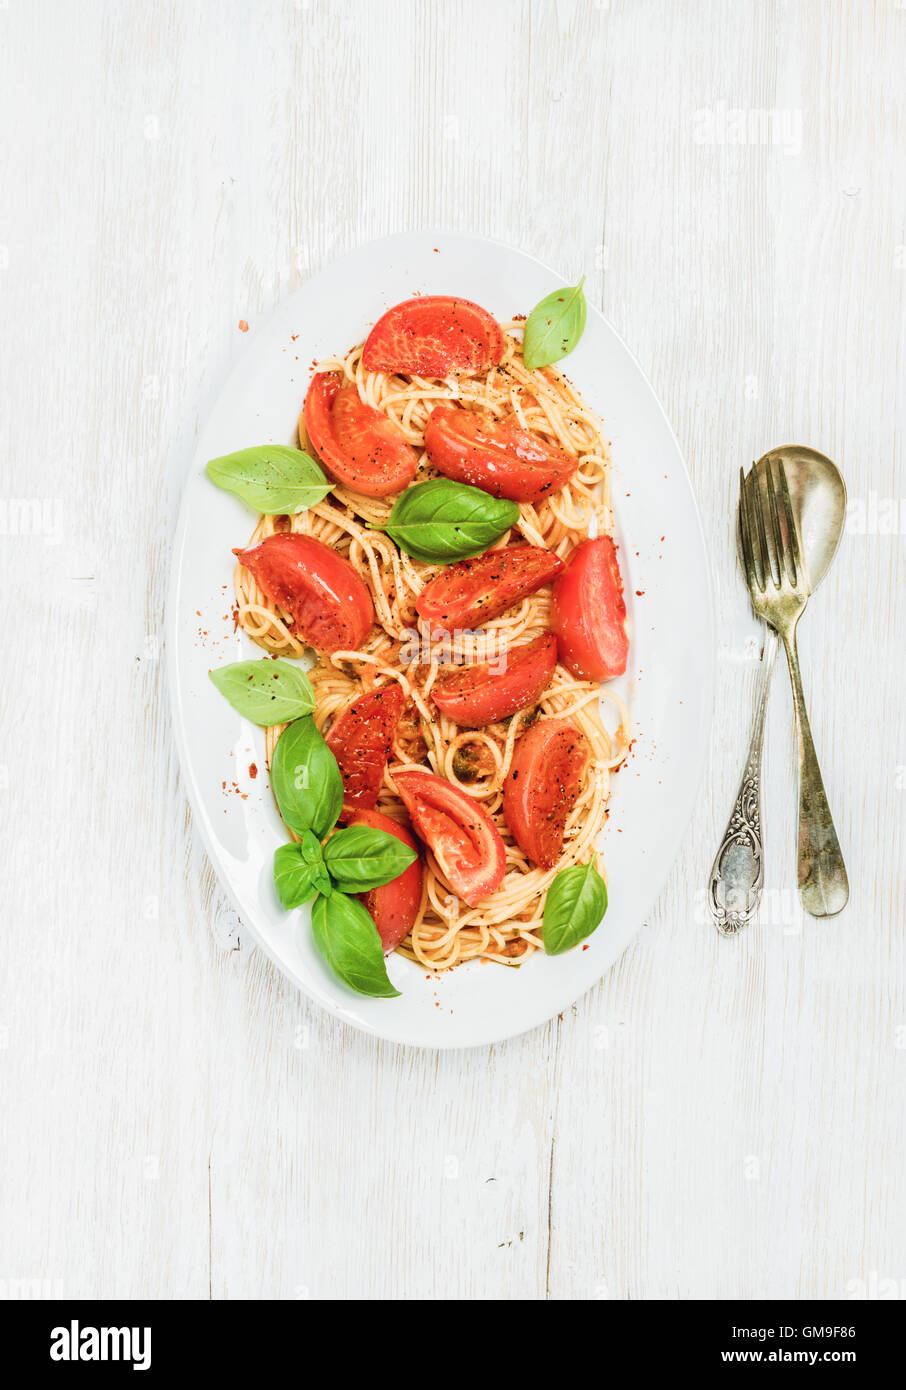 Pasta with roasted tomatoes and basil over white wooden background - Stock Image